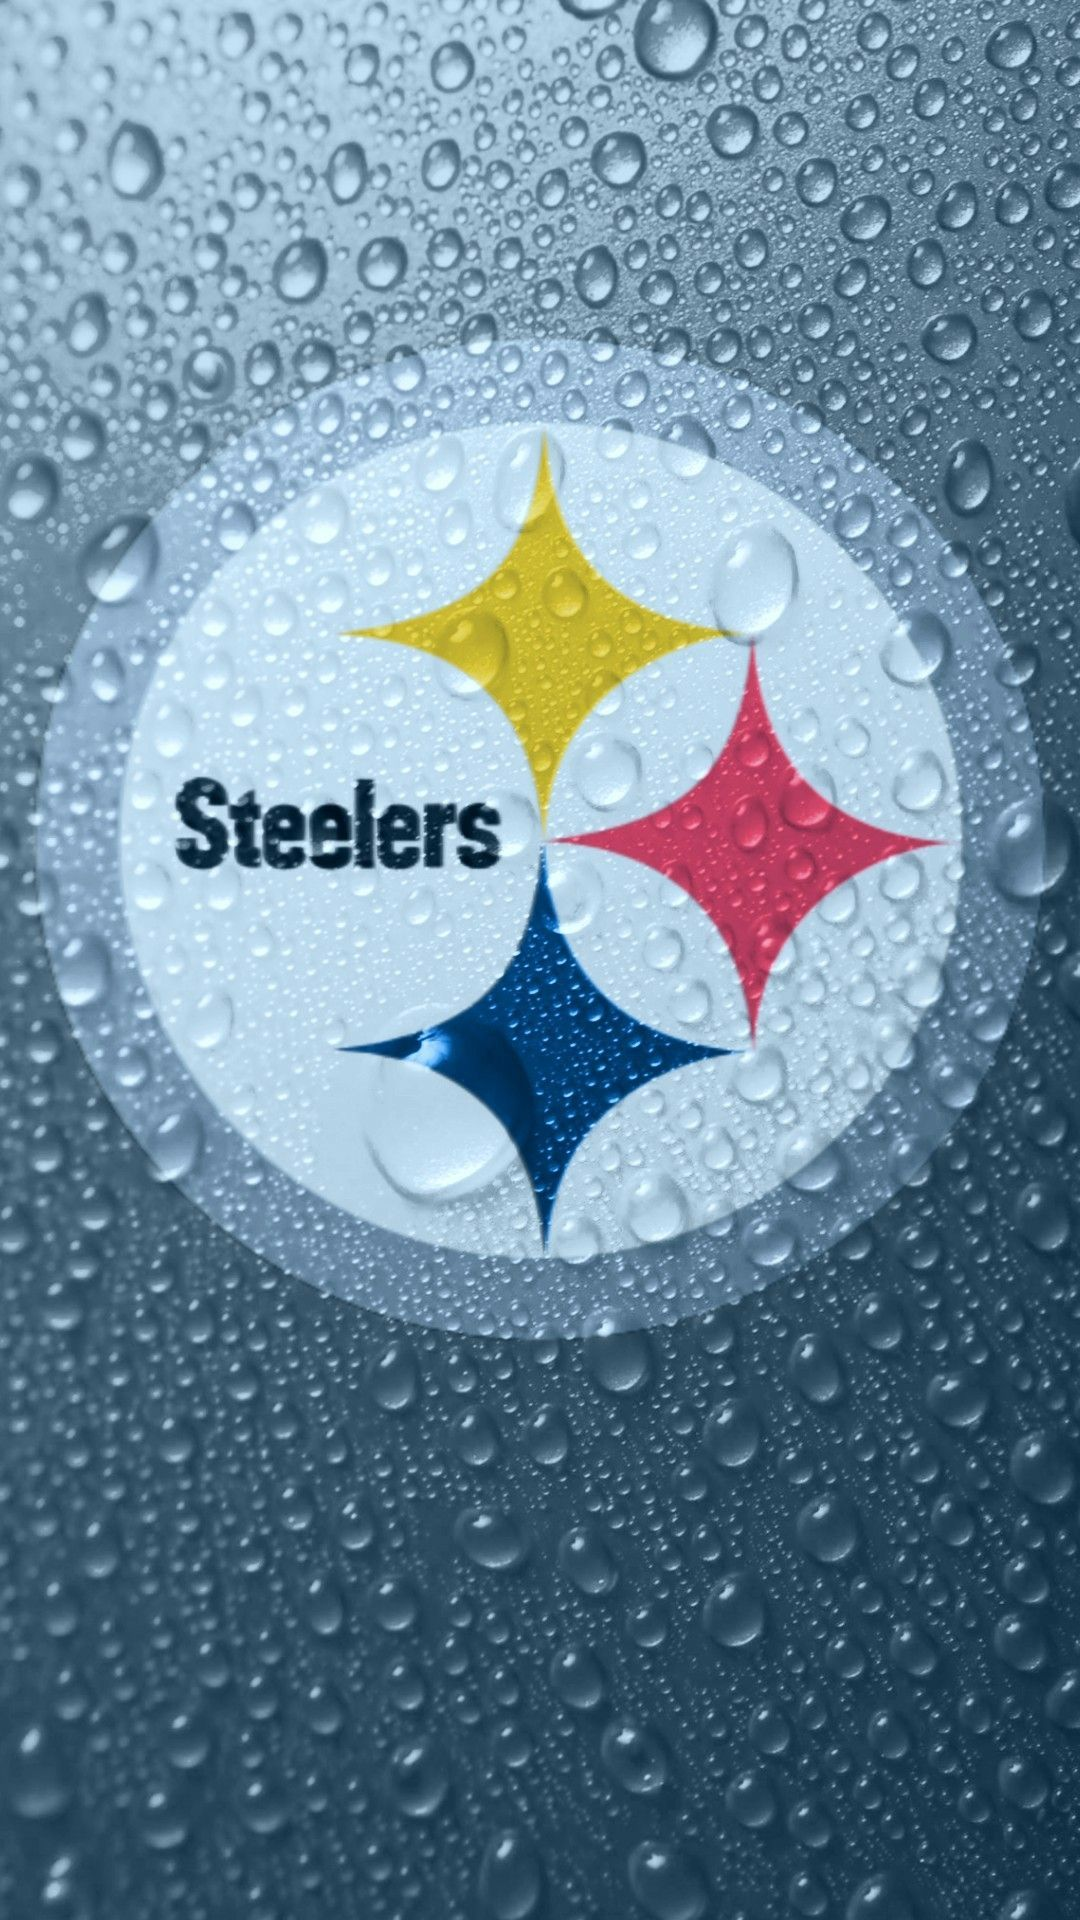 Steelers Background In 2020 Pittsburgh Steelers Wallpaper Steelers Pittsburgh Steelers Football